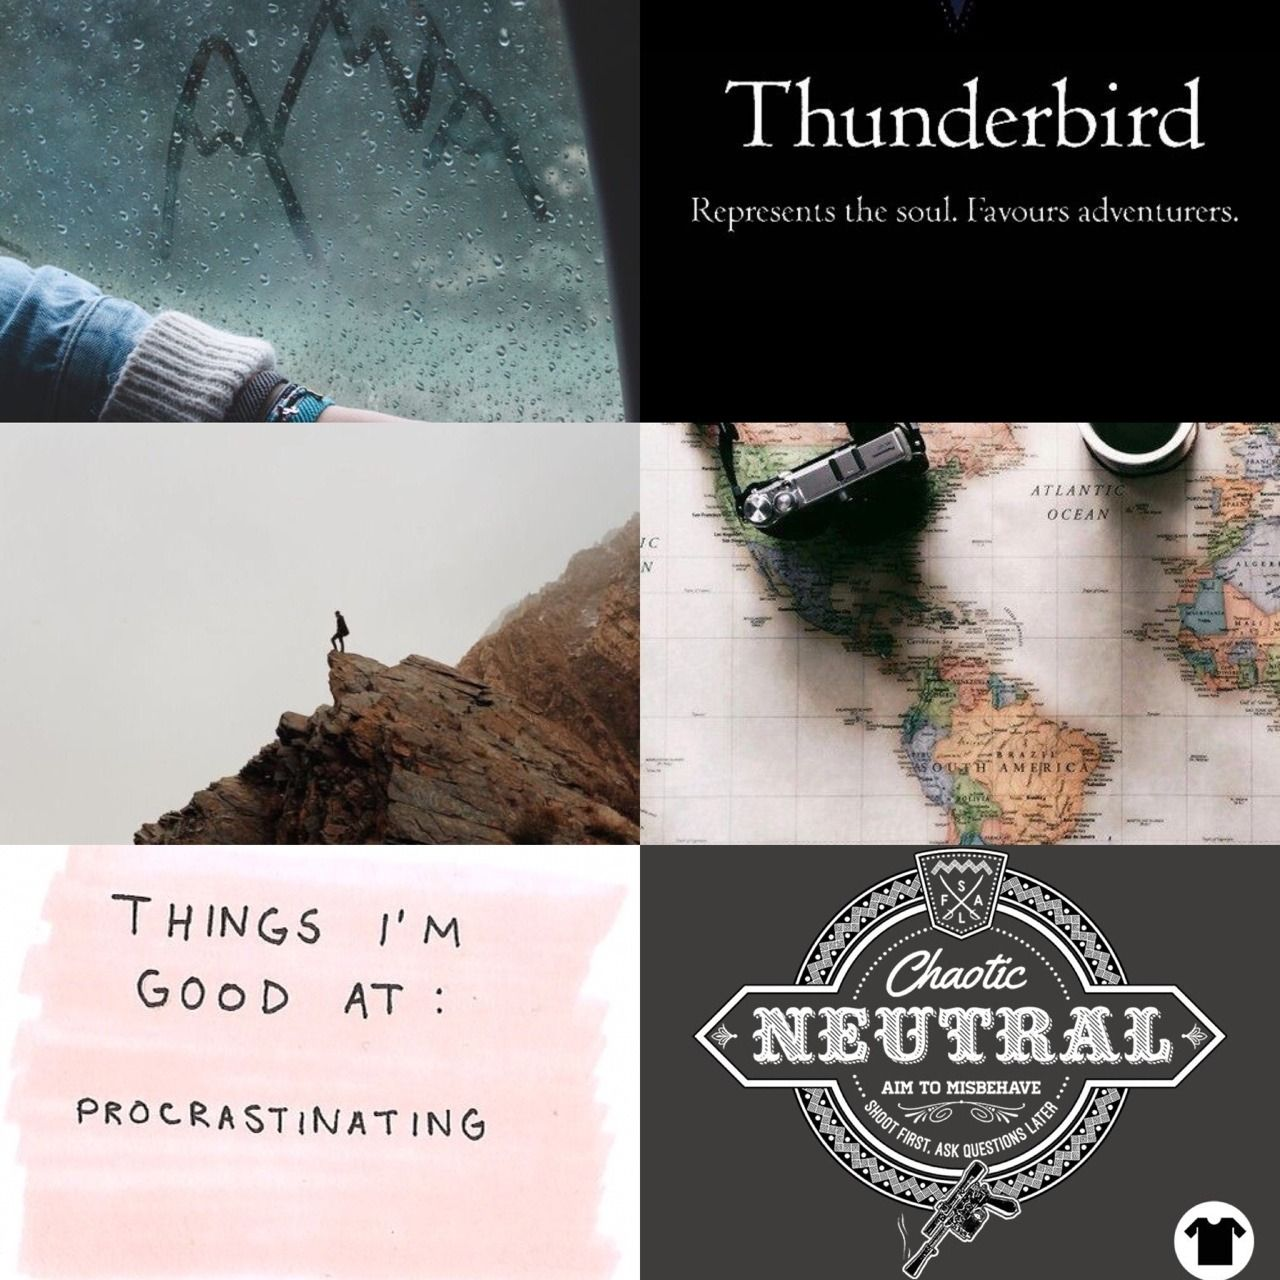 Rowena | INTP, 5w6, Thunderbird, Slytherin, Chaotic neutral